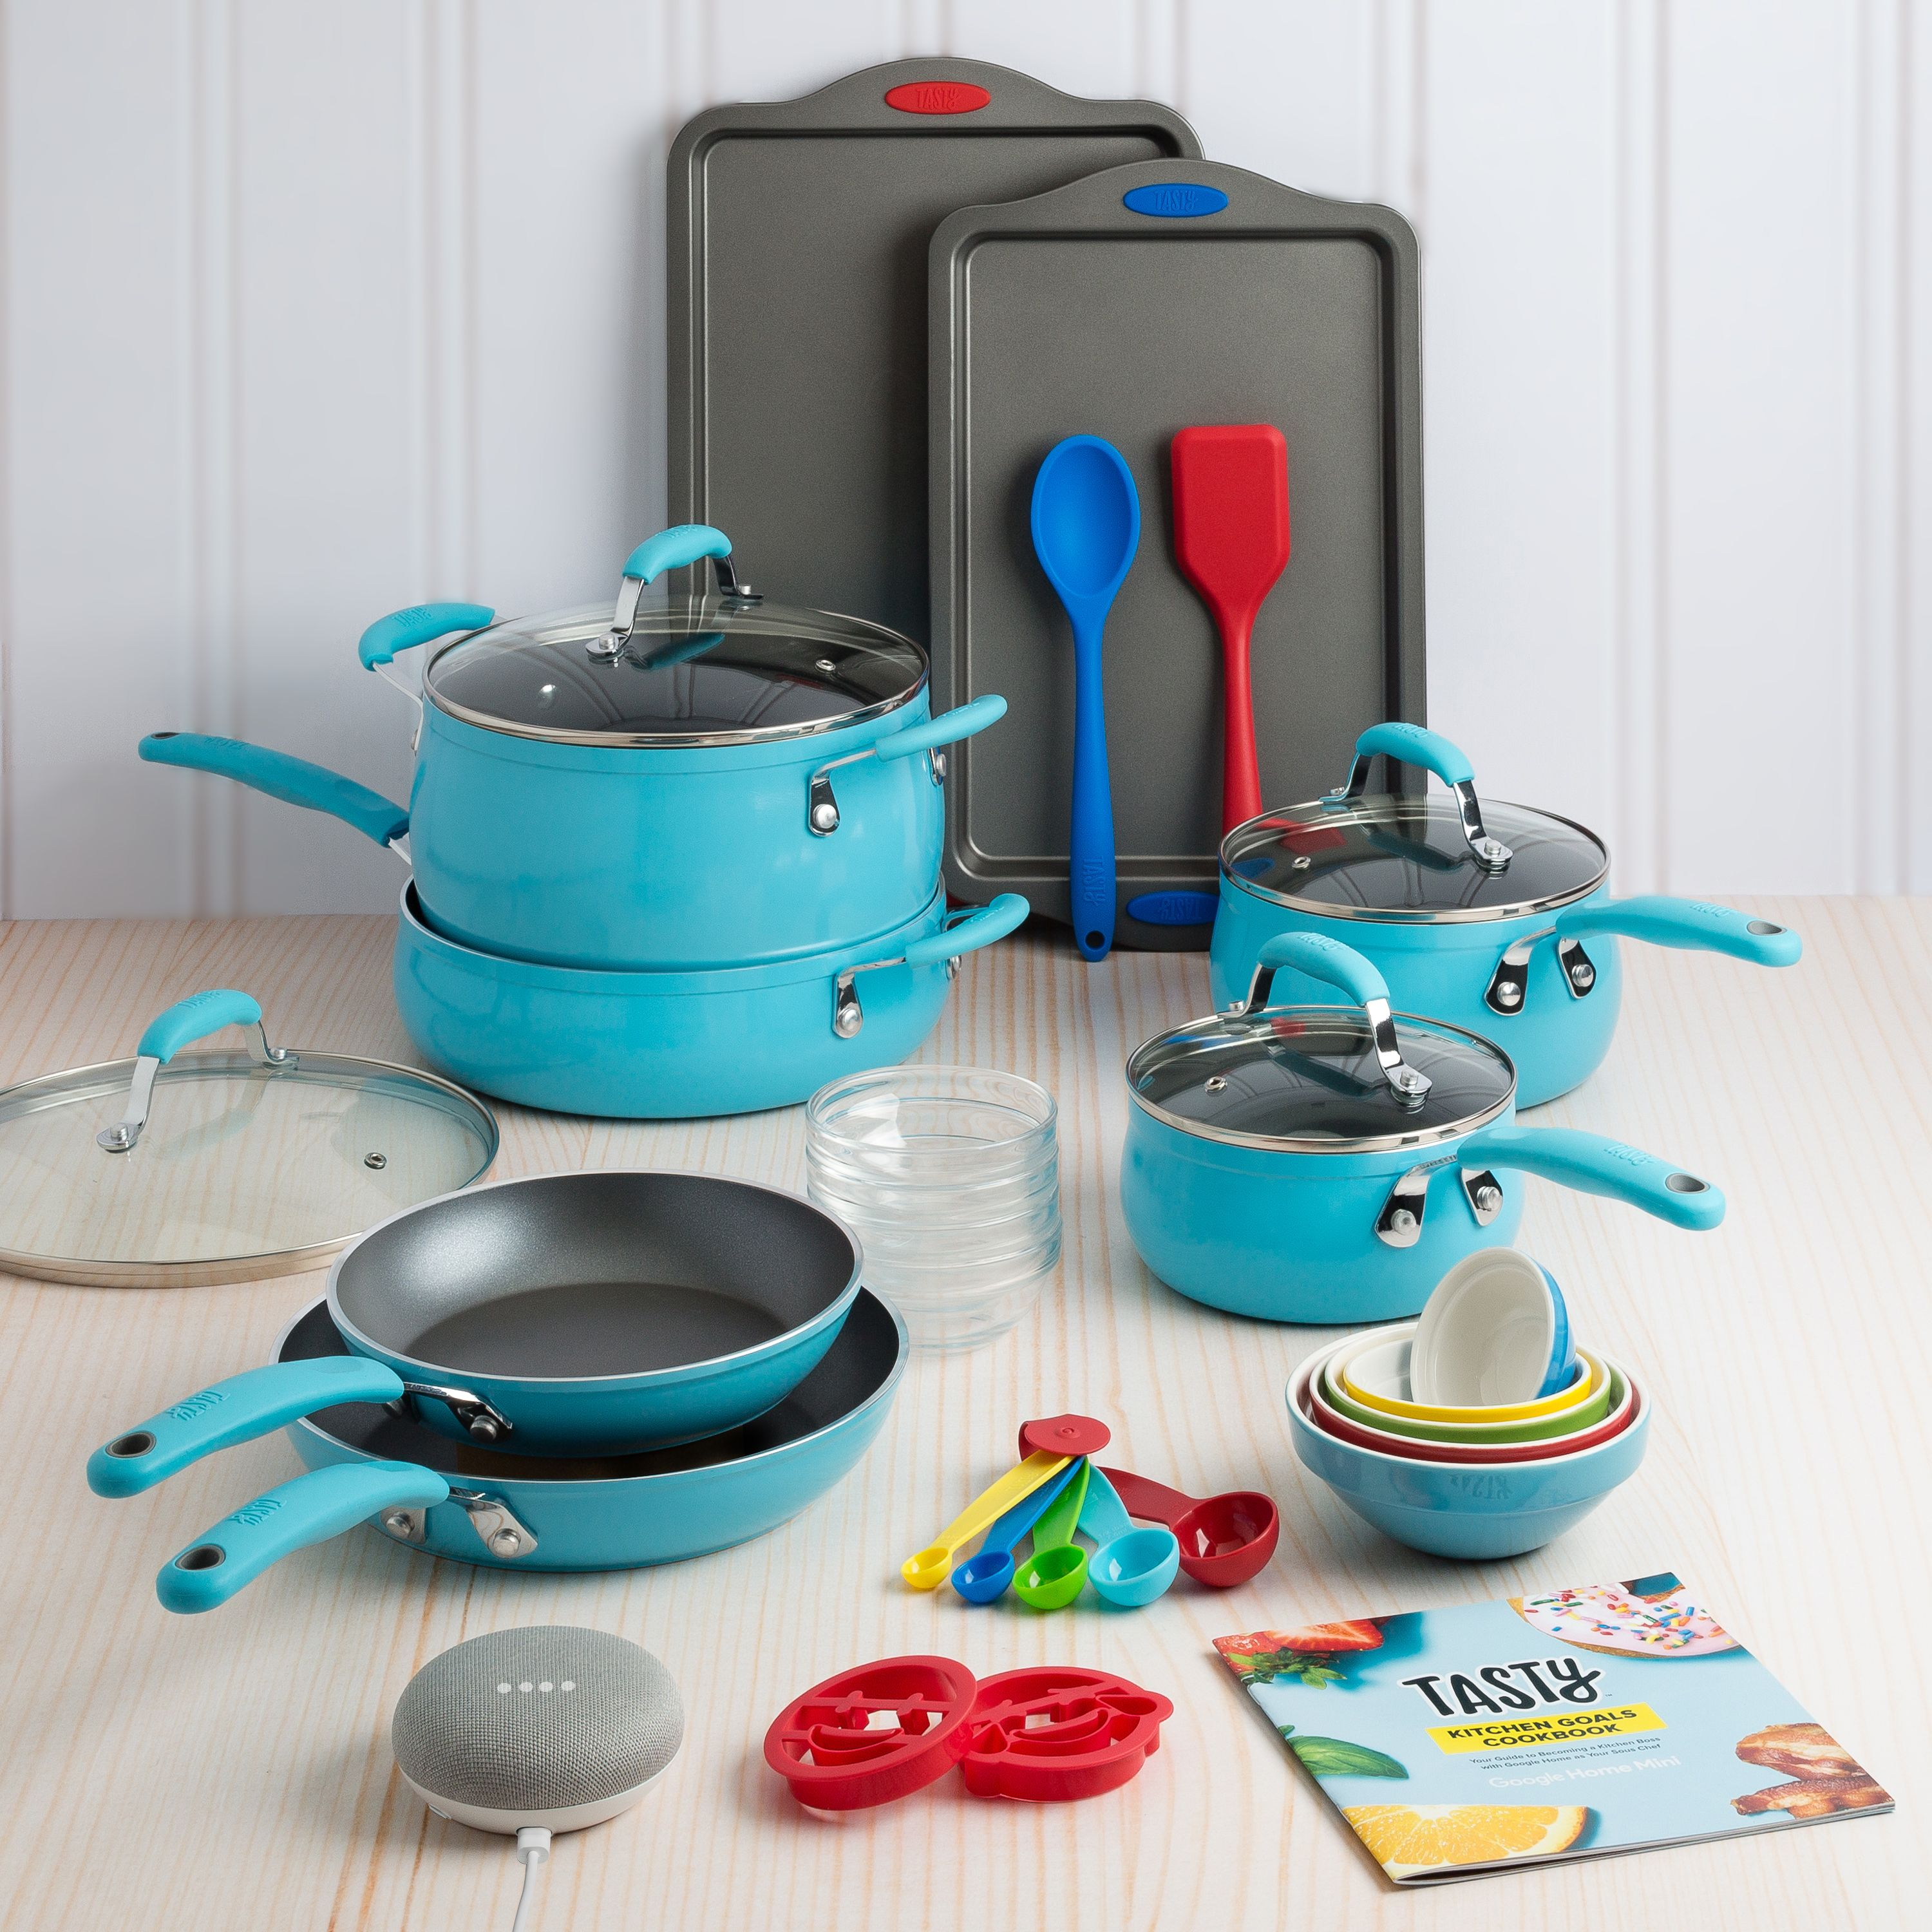 Tasty Blue Cookware Set, 30 Piece